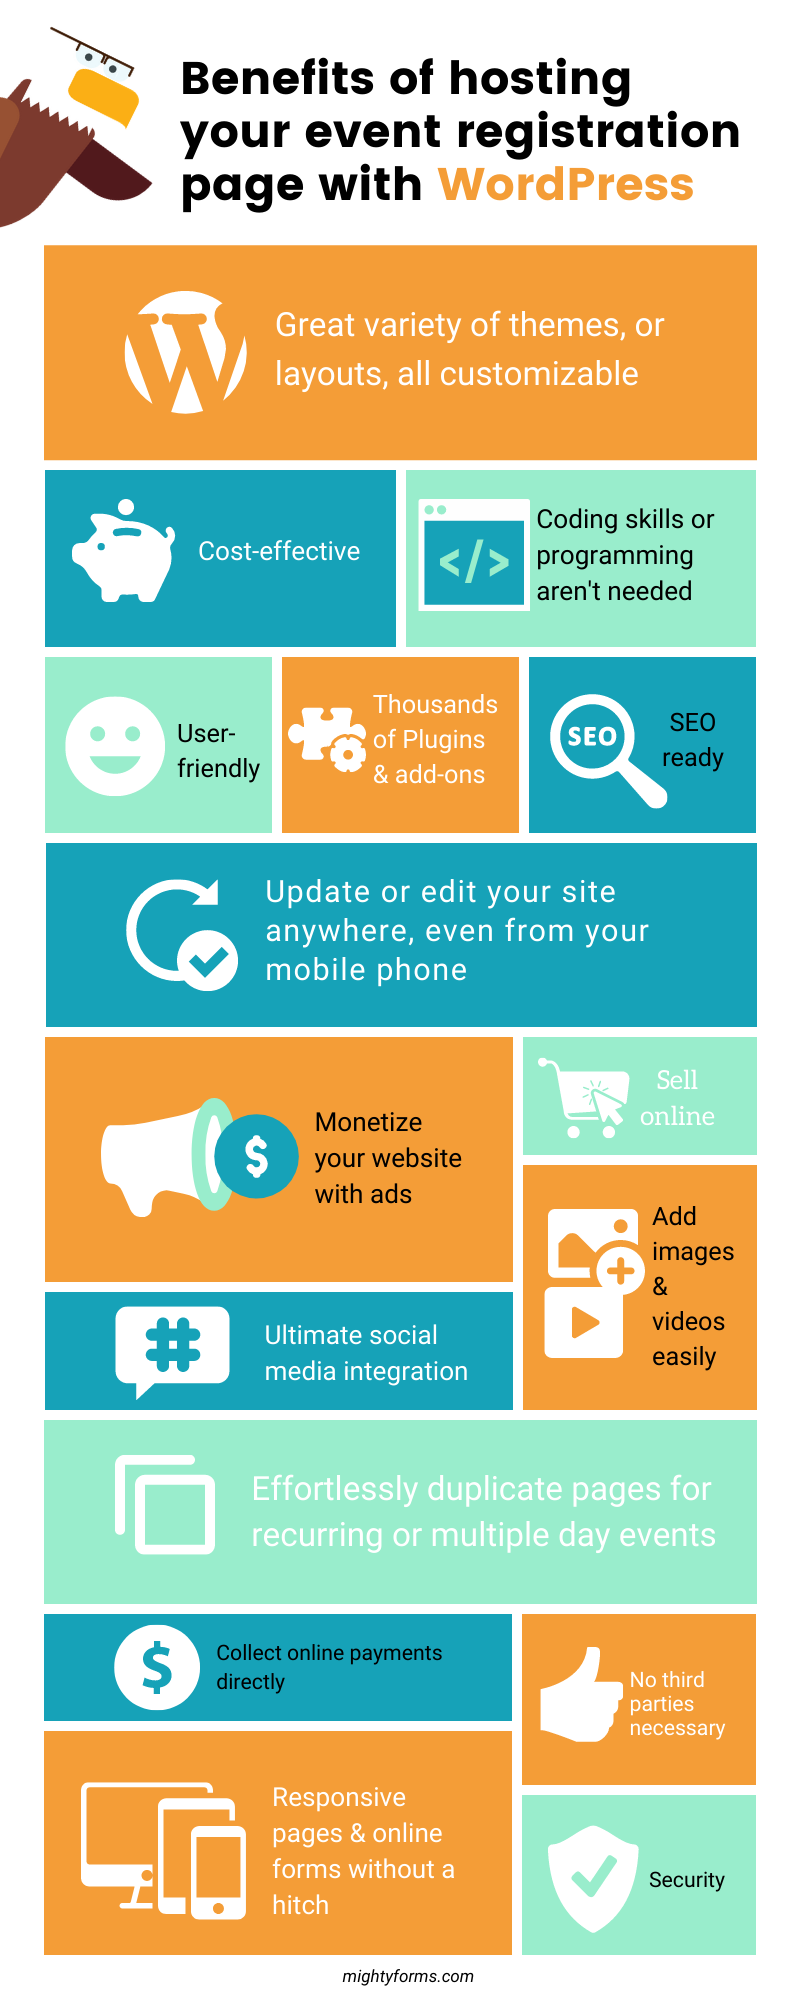 Benefits of hosting your event registration page with WordPress Infographic _ MightyForms